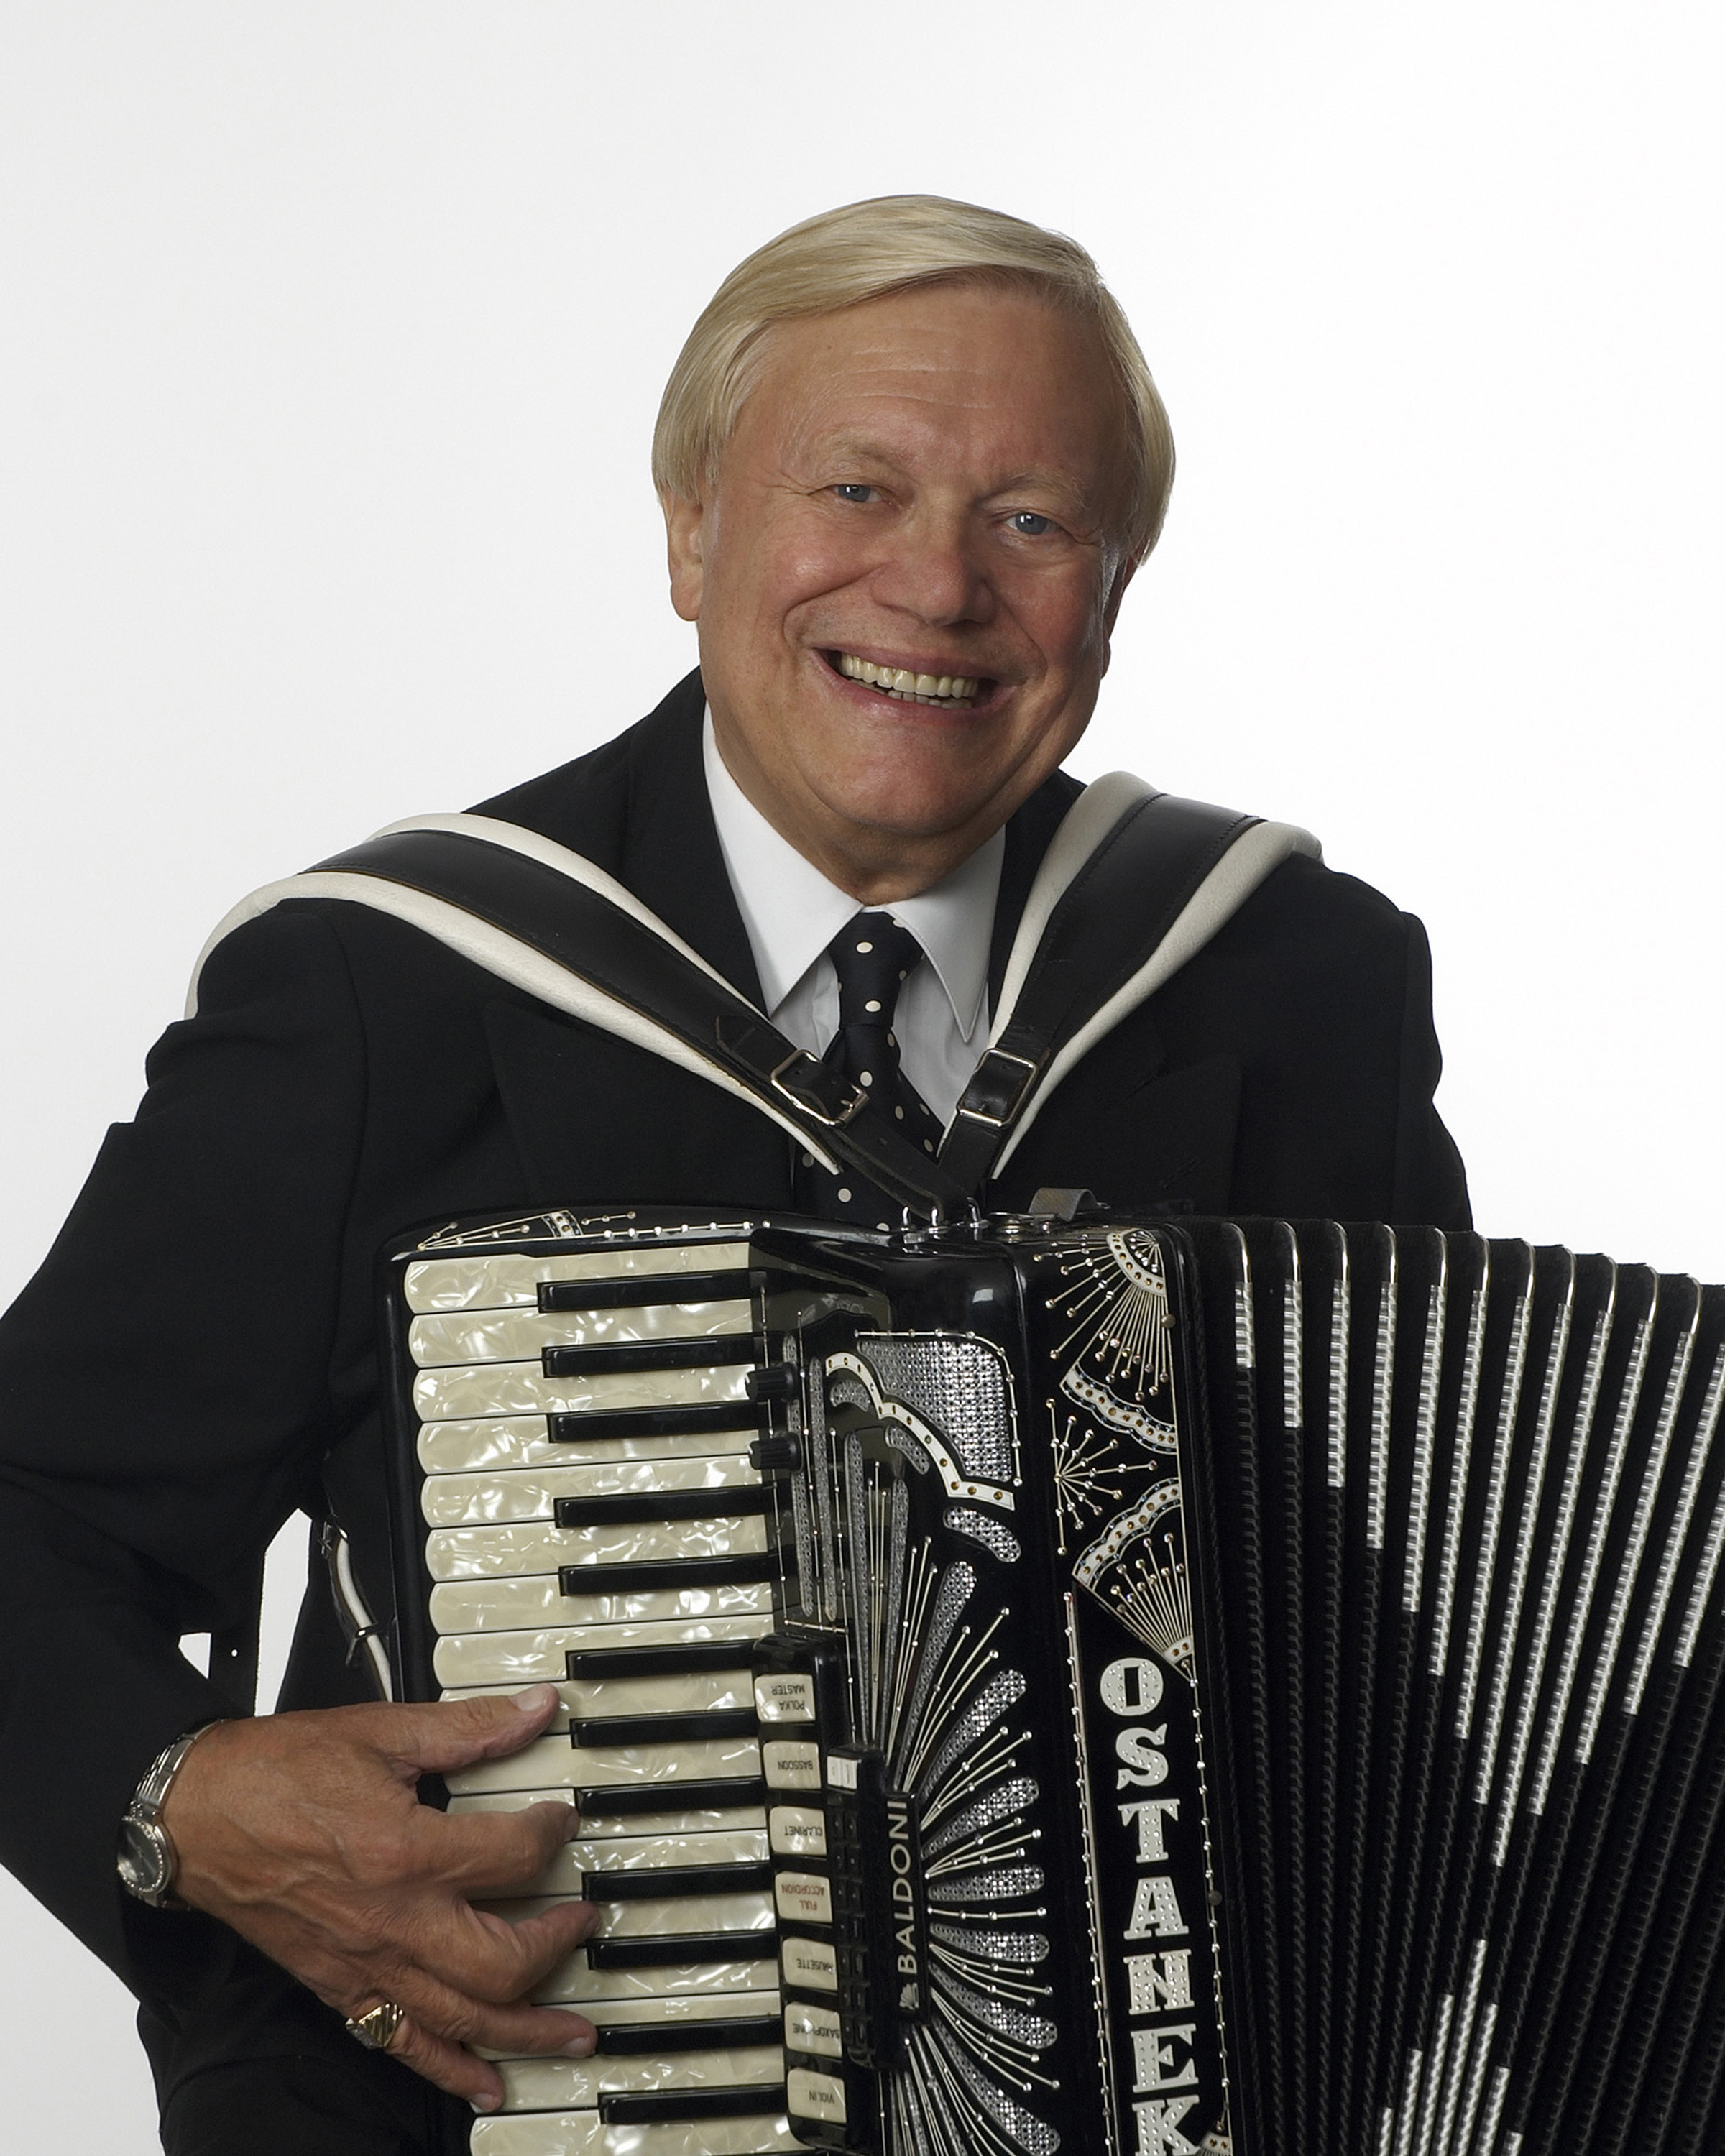 Walter Ostanek Standing Accordion